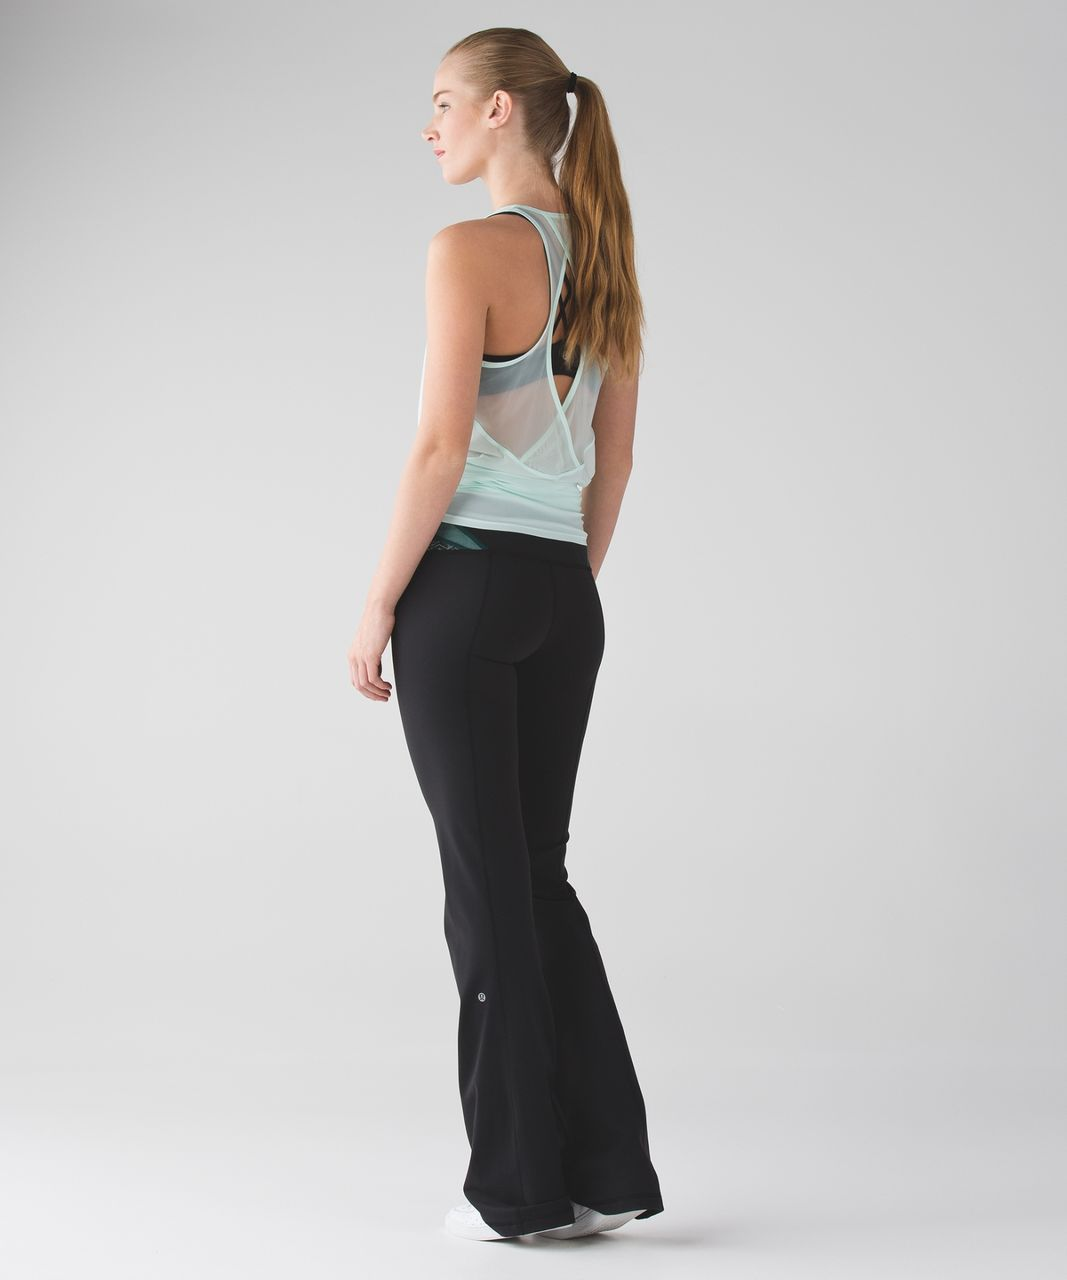 Lululemon Groove Pant III (Tall) *Full-On Luon - Black / Deep Green / Sea Mist